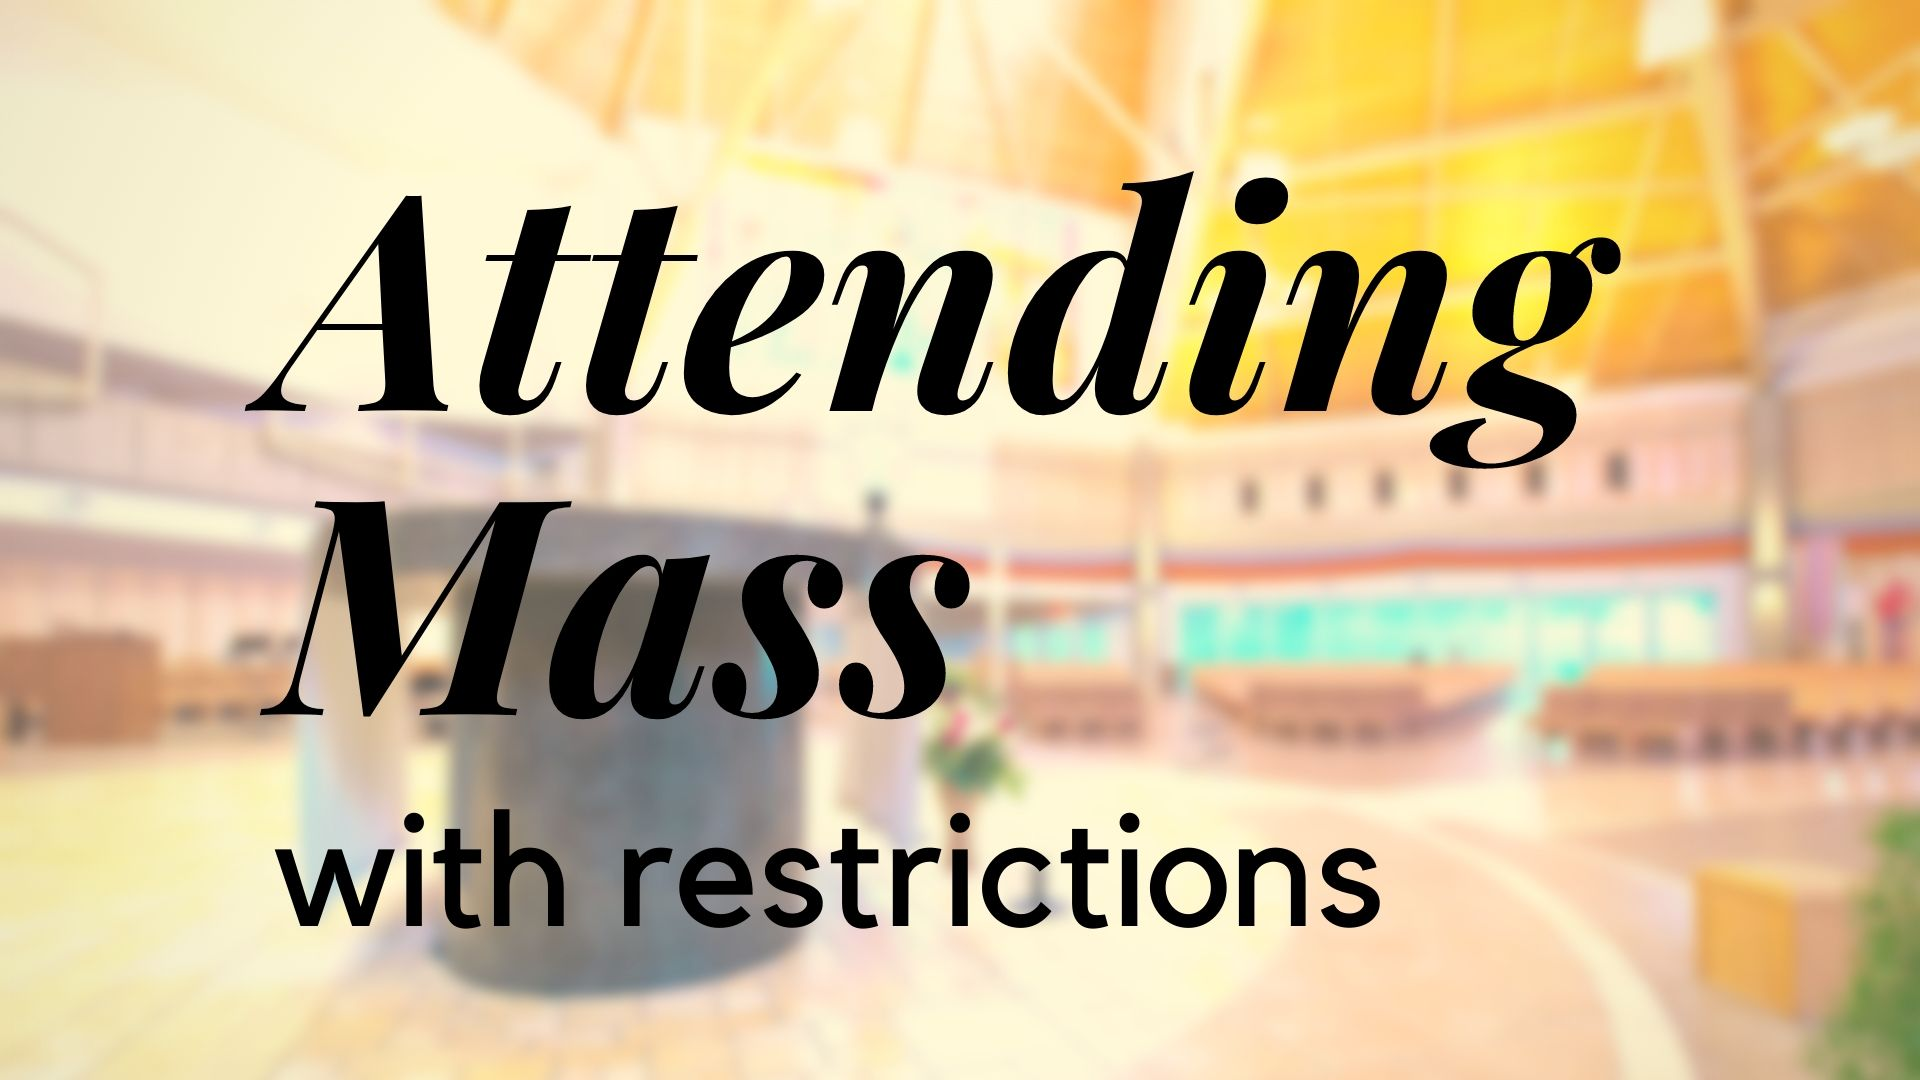 Attending Mass with restrictions